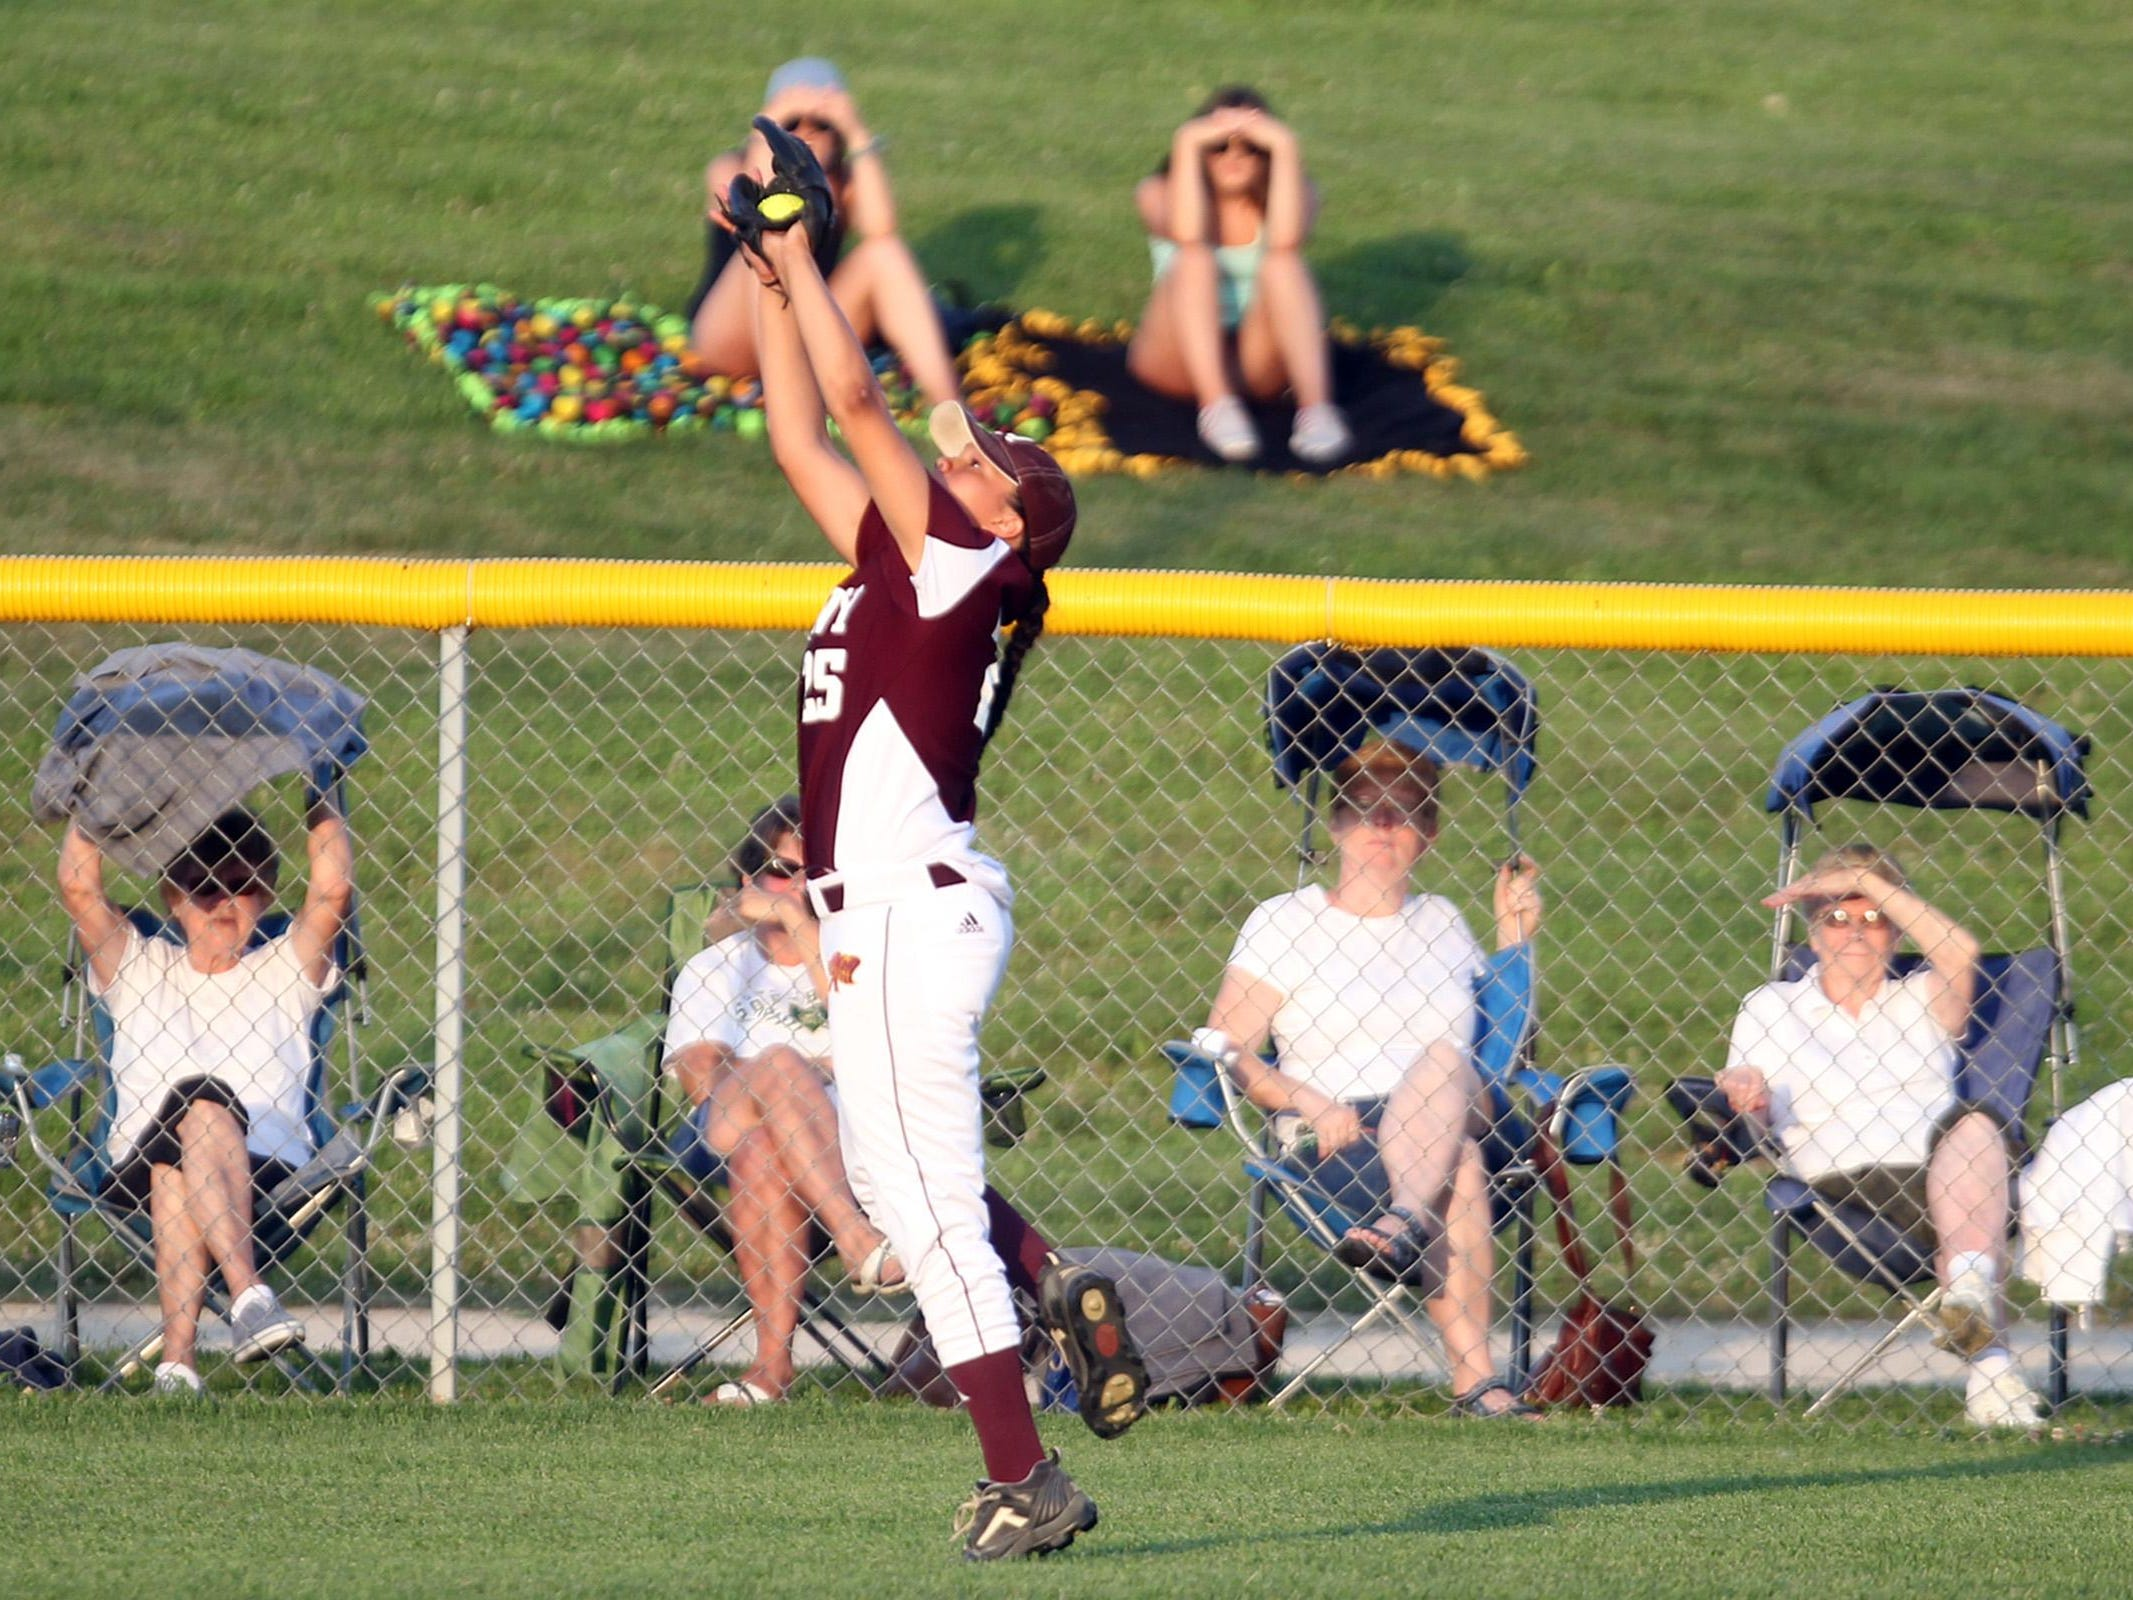 Ankeny's Kennedy Thomas reaches out to catch a deep hit during the Hawkettes' Class 5A regional championship game at West High on Tuesday, July 14, 2015. Ankeny won, 3-1, to head to state. David Scrivner / Iowa City Press-Citizen